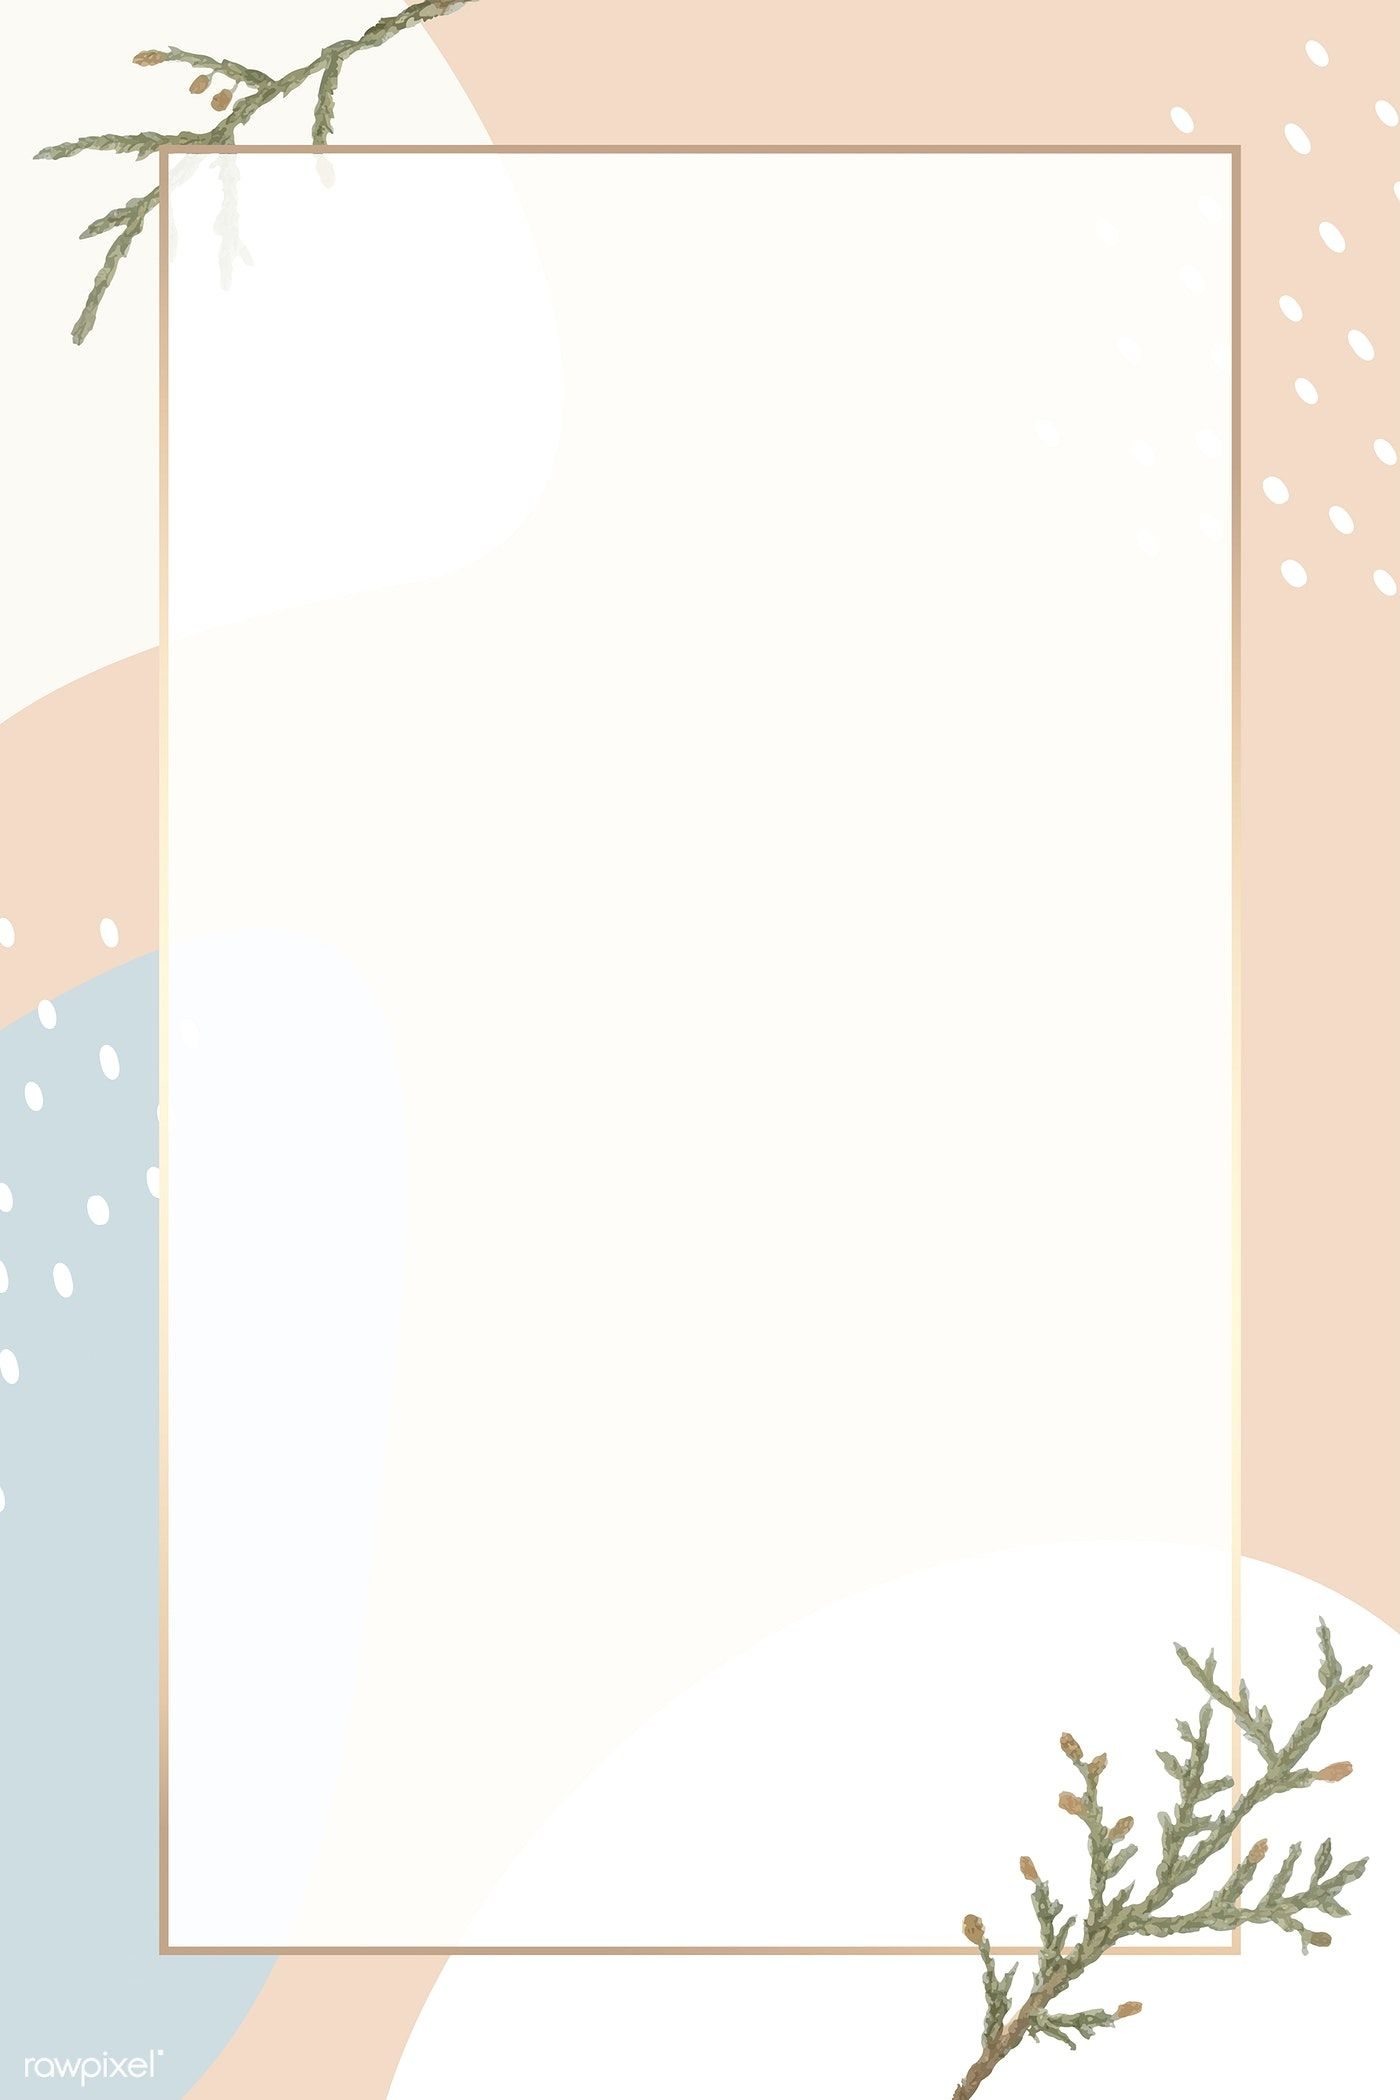 Download Premium Vector Of Rectangle Gold Frame On Minimal Patterned Powerpoint Background Design Minimalist Wallpaper Cute Pastel Wallpaper